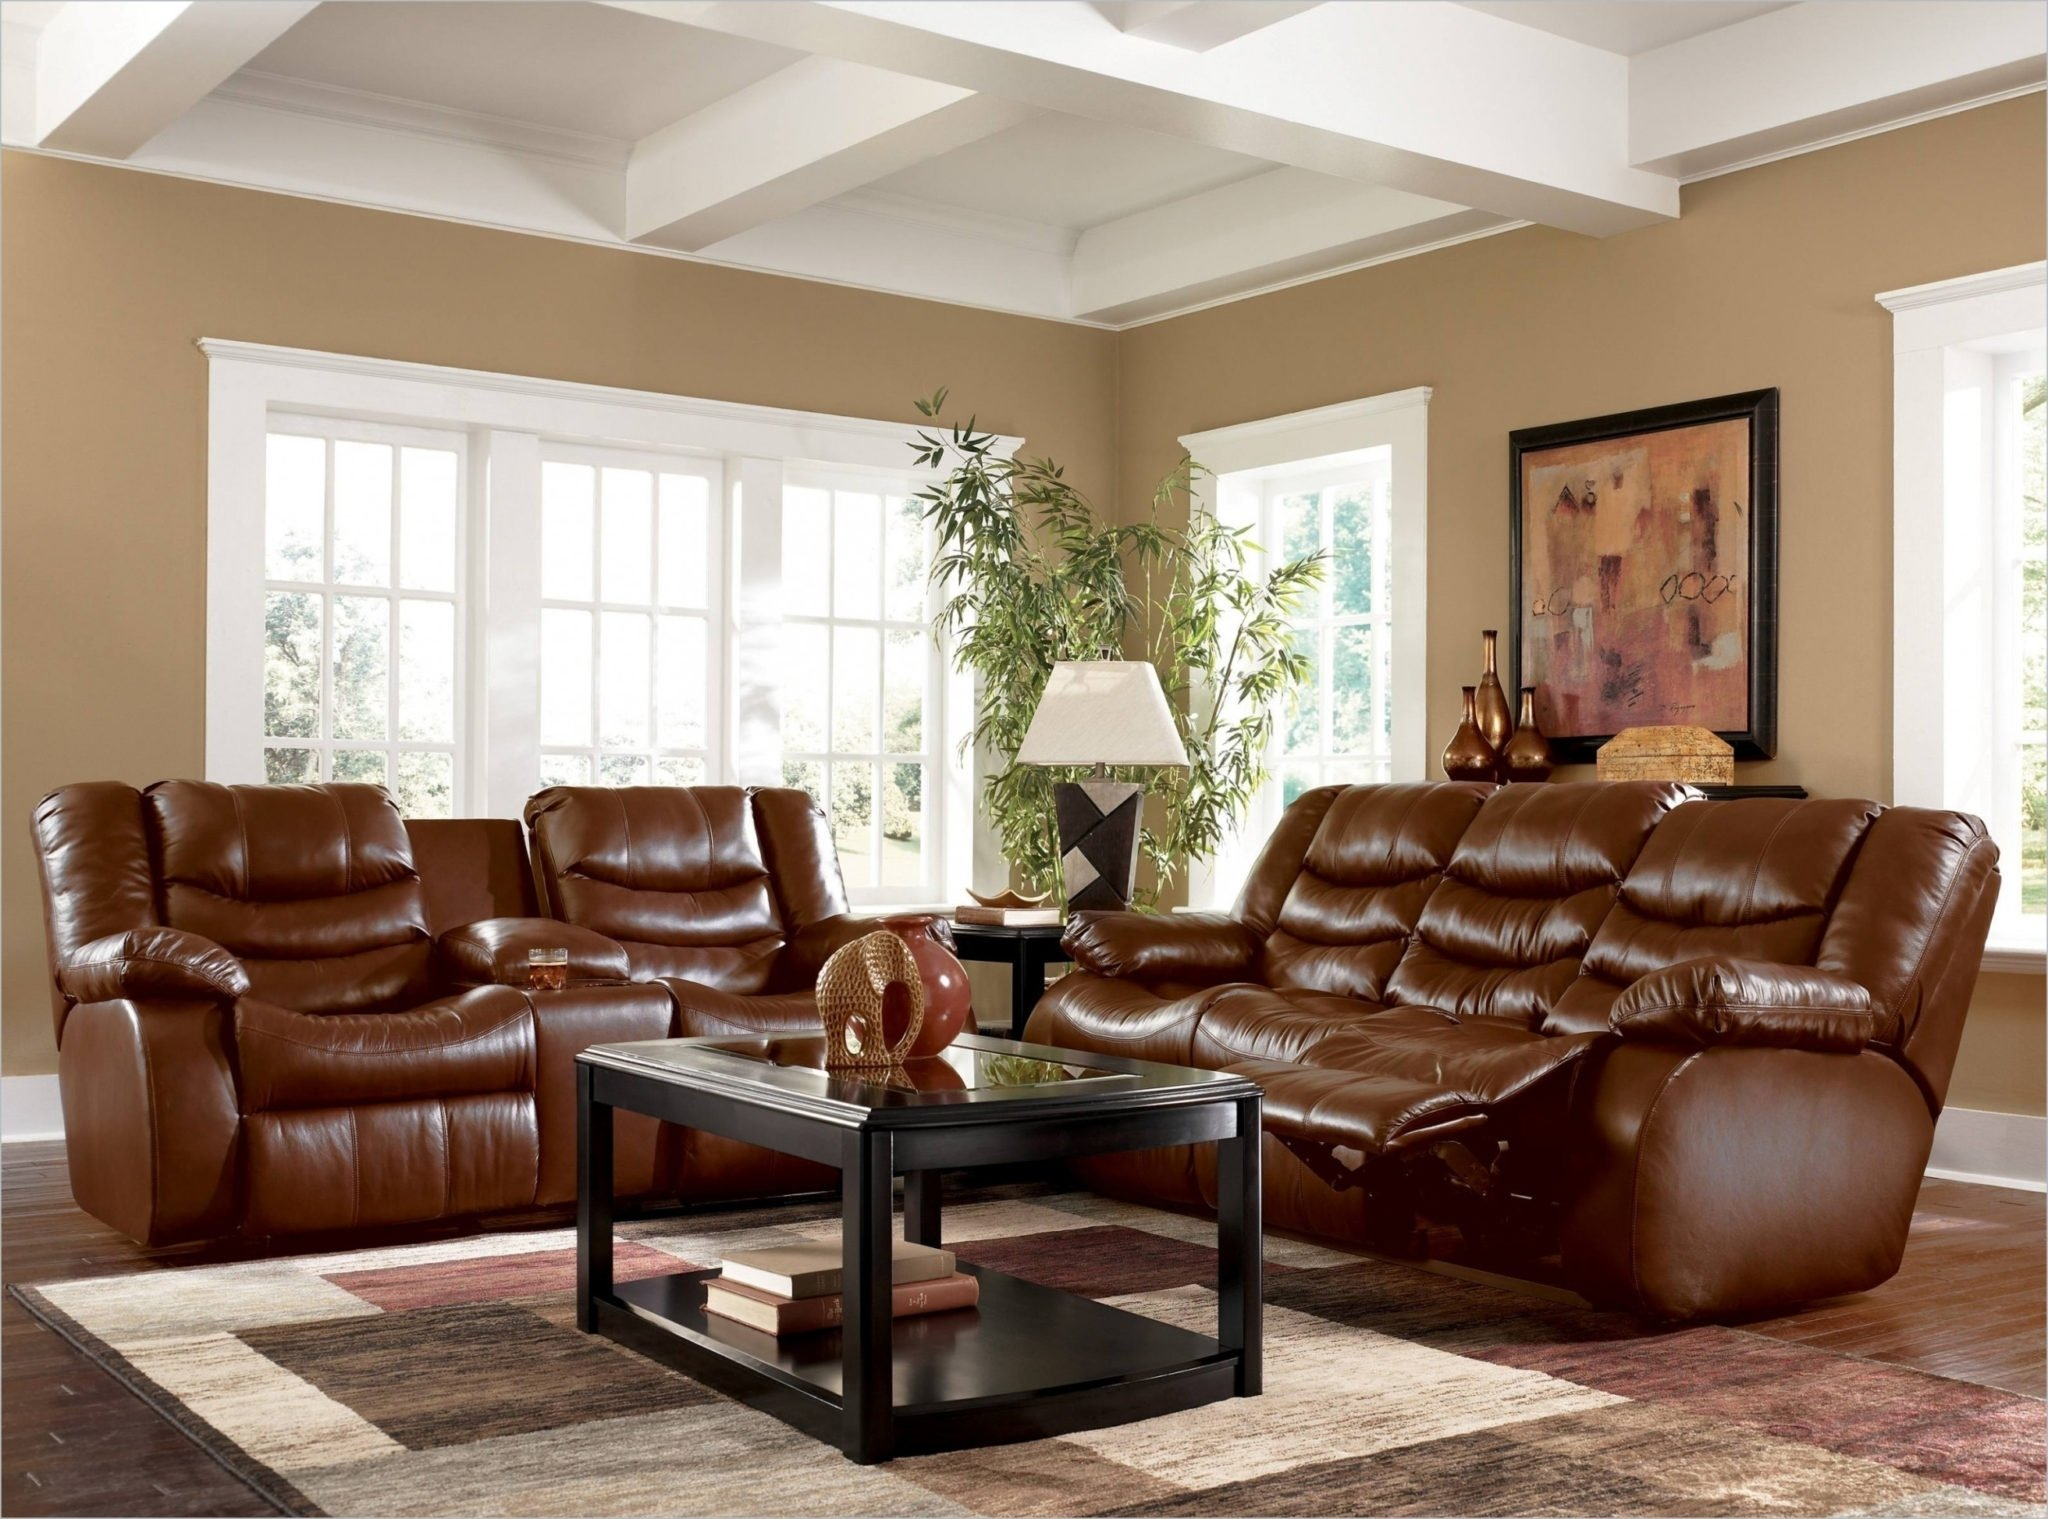 10 Stylish Brown Leather Sofa Decorating Ideas leather furniture decor living room home maximize ideas 2020